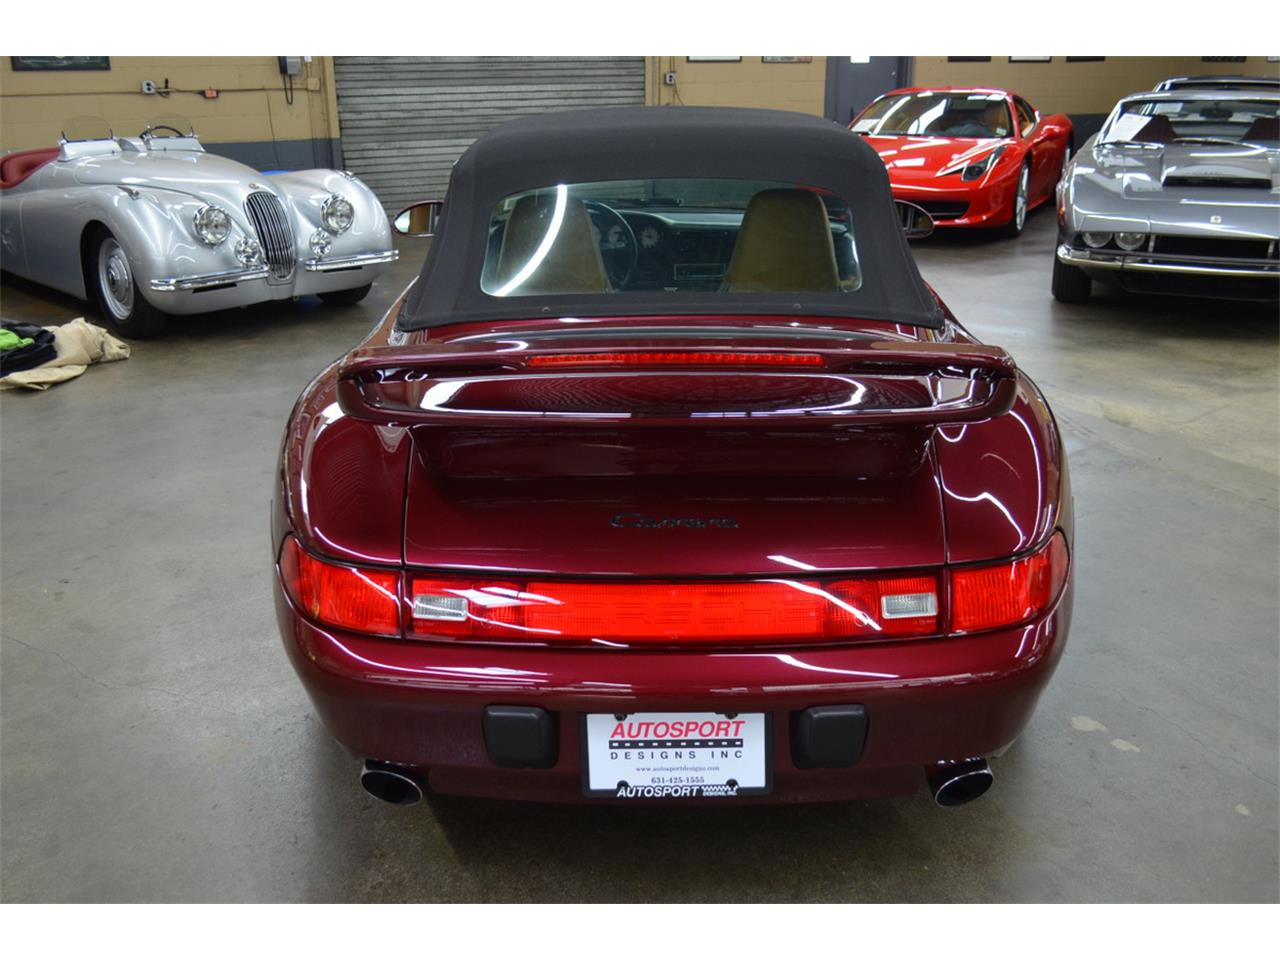 Large Picture of 1997 Porsche 911 Carrera located in New York - $79,500.00 - QG4T